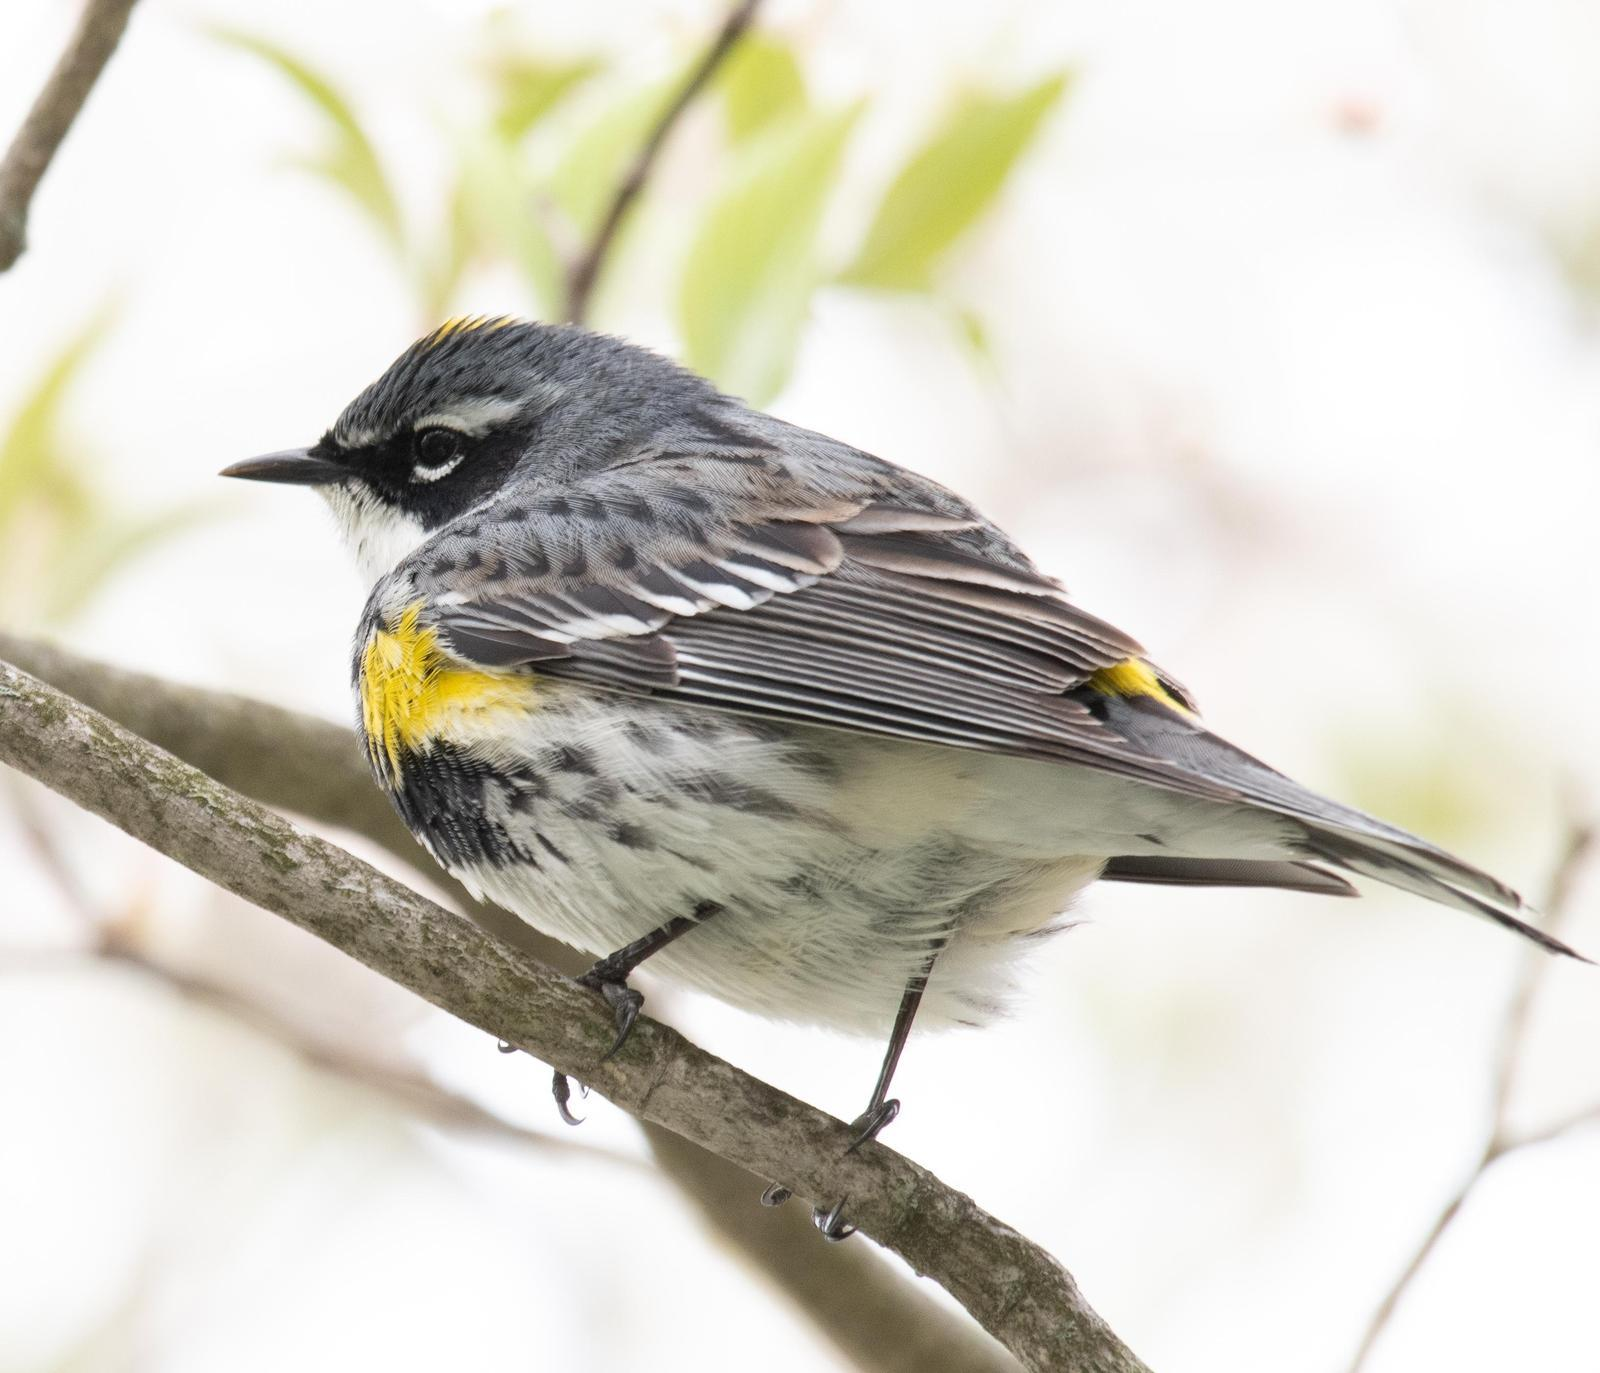 Yellow-rumped Warbler Photo by Hume Vance